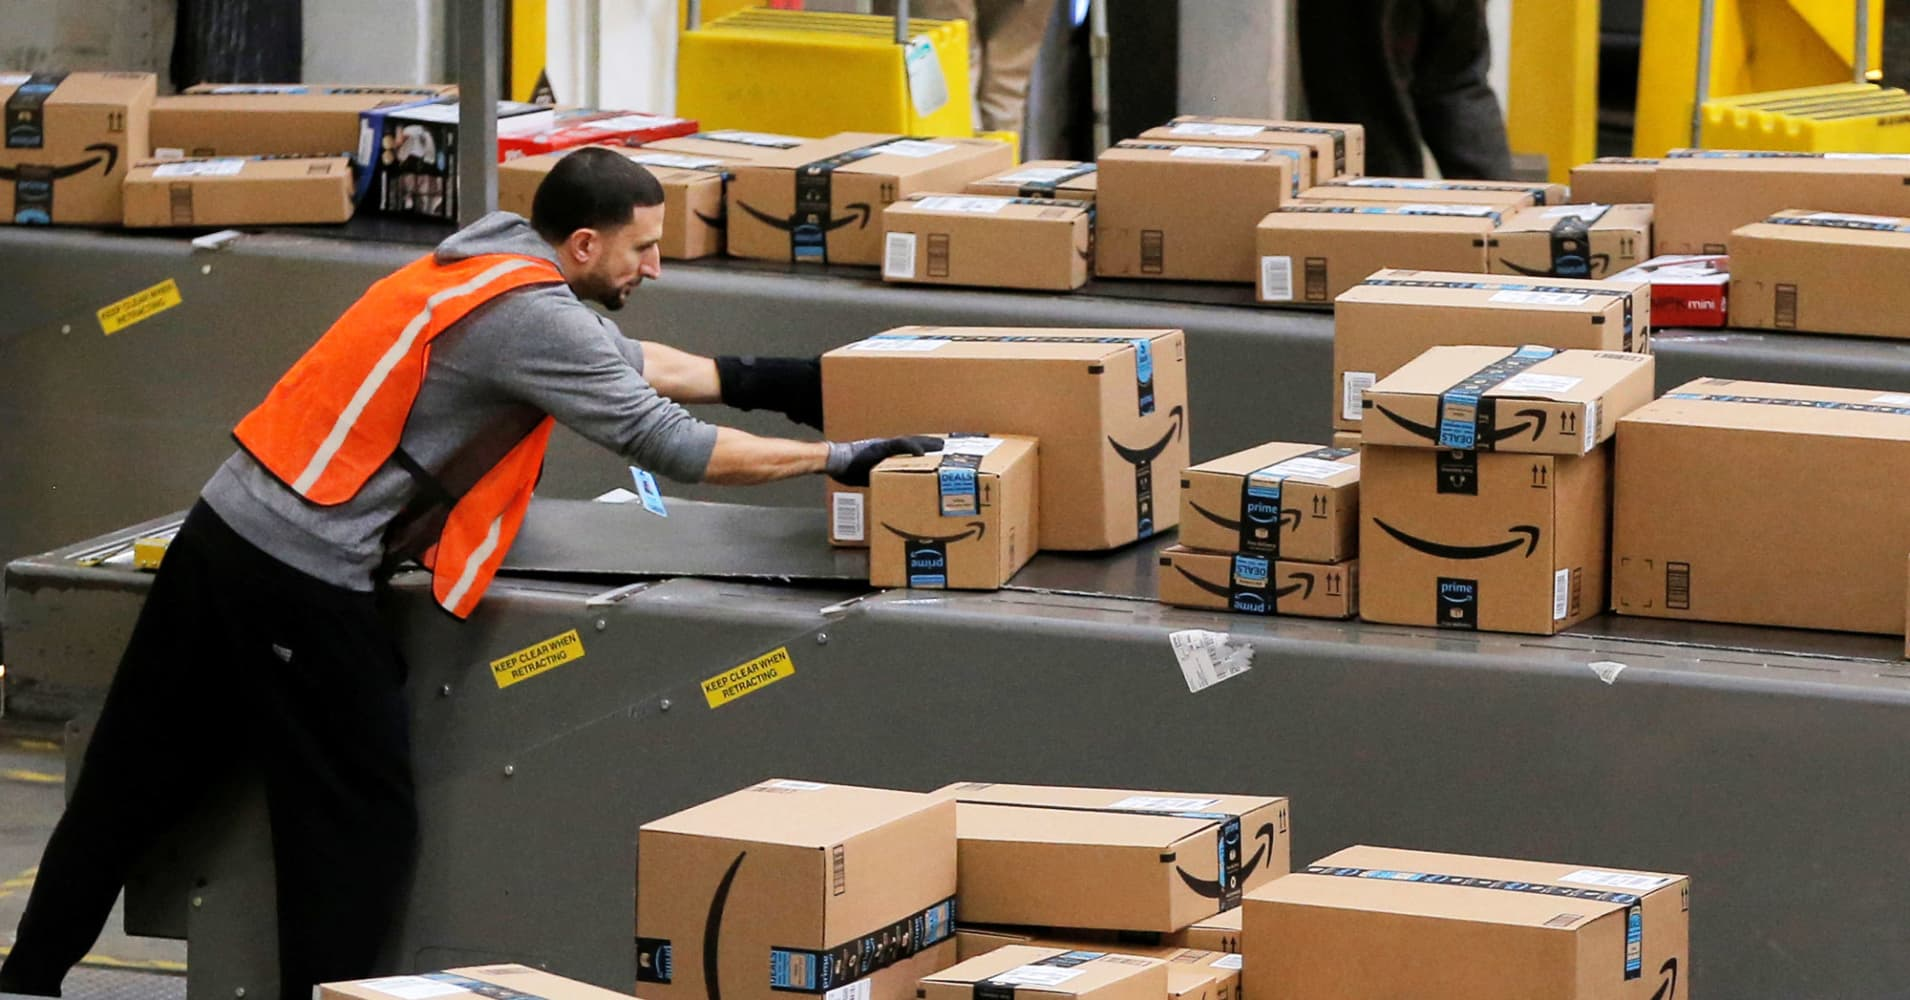 Ideal New Warehouse Policy Inventory Performance Index Is Amazon Warehouse Deals Worth It What Is Warranty On Amazon Warehouse Deals dpreview What Is Amazon Warehouse Deals